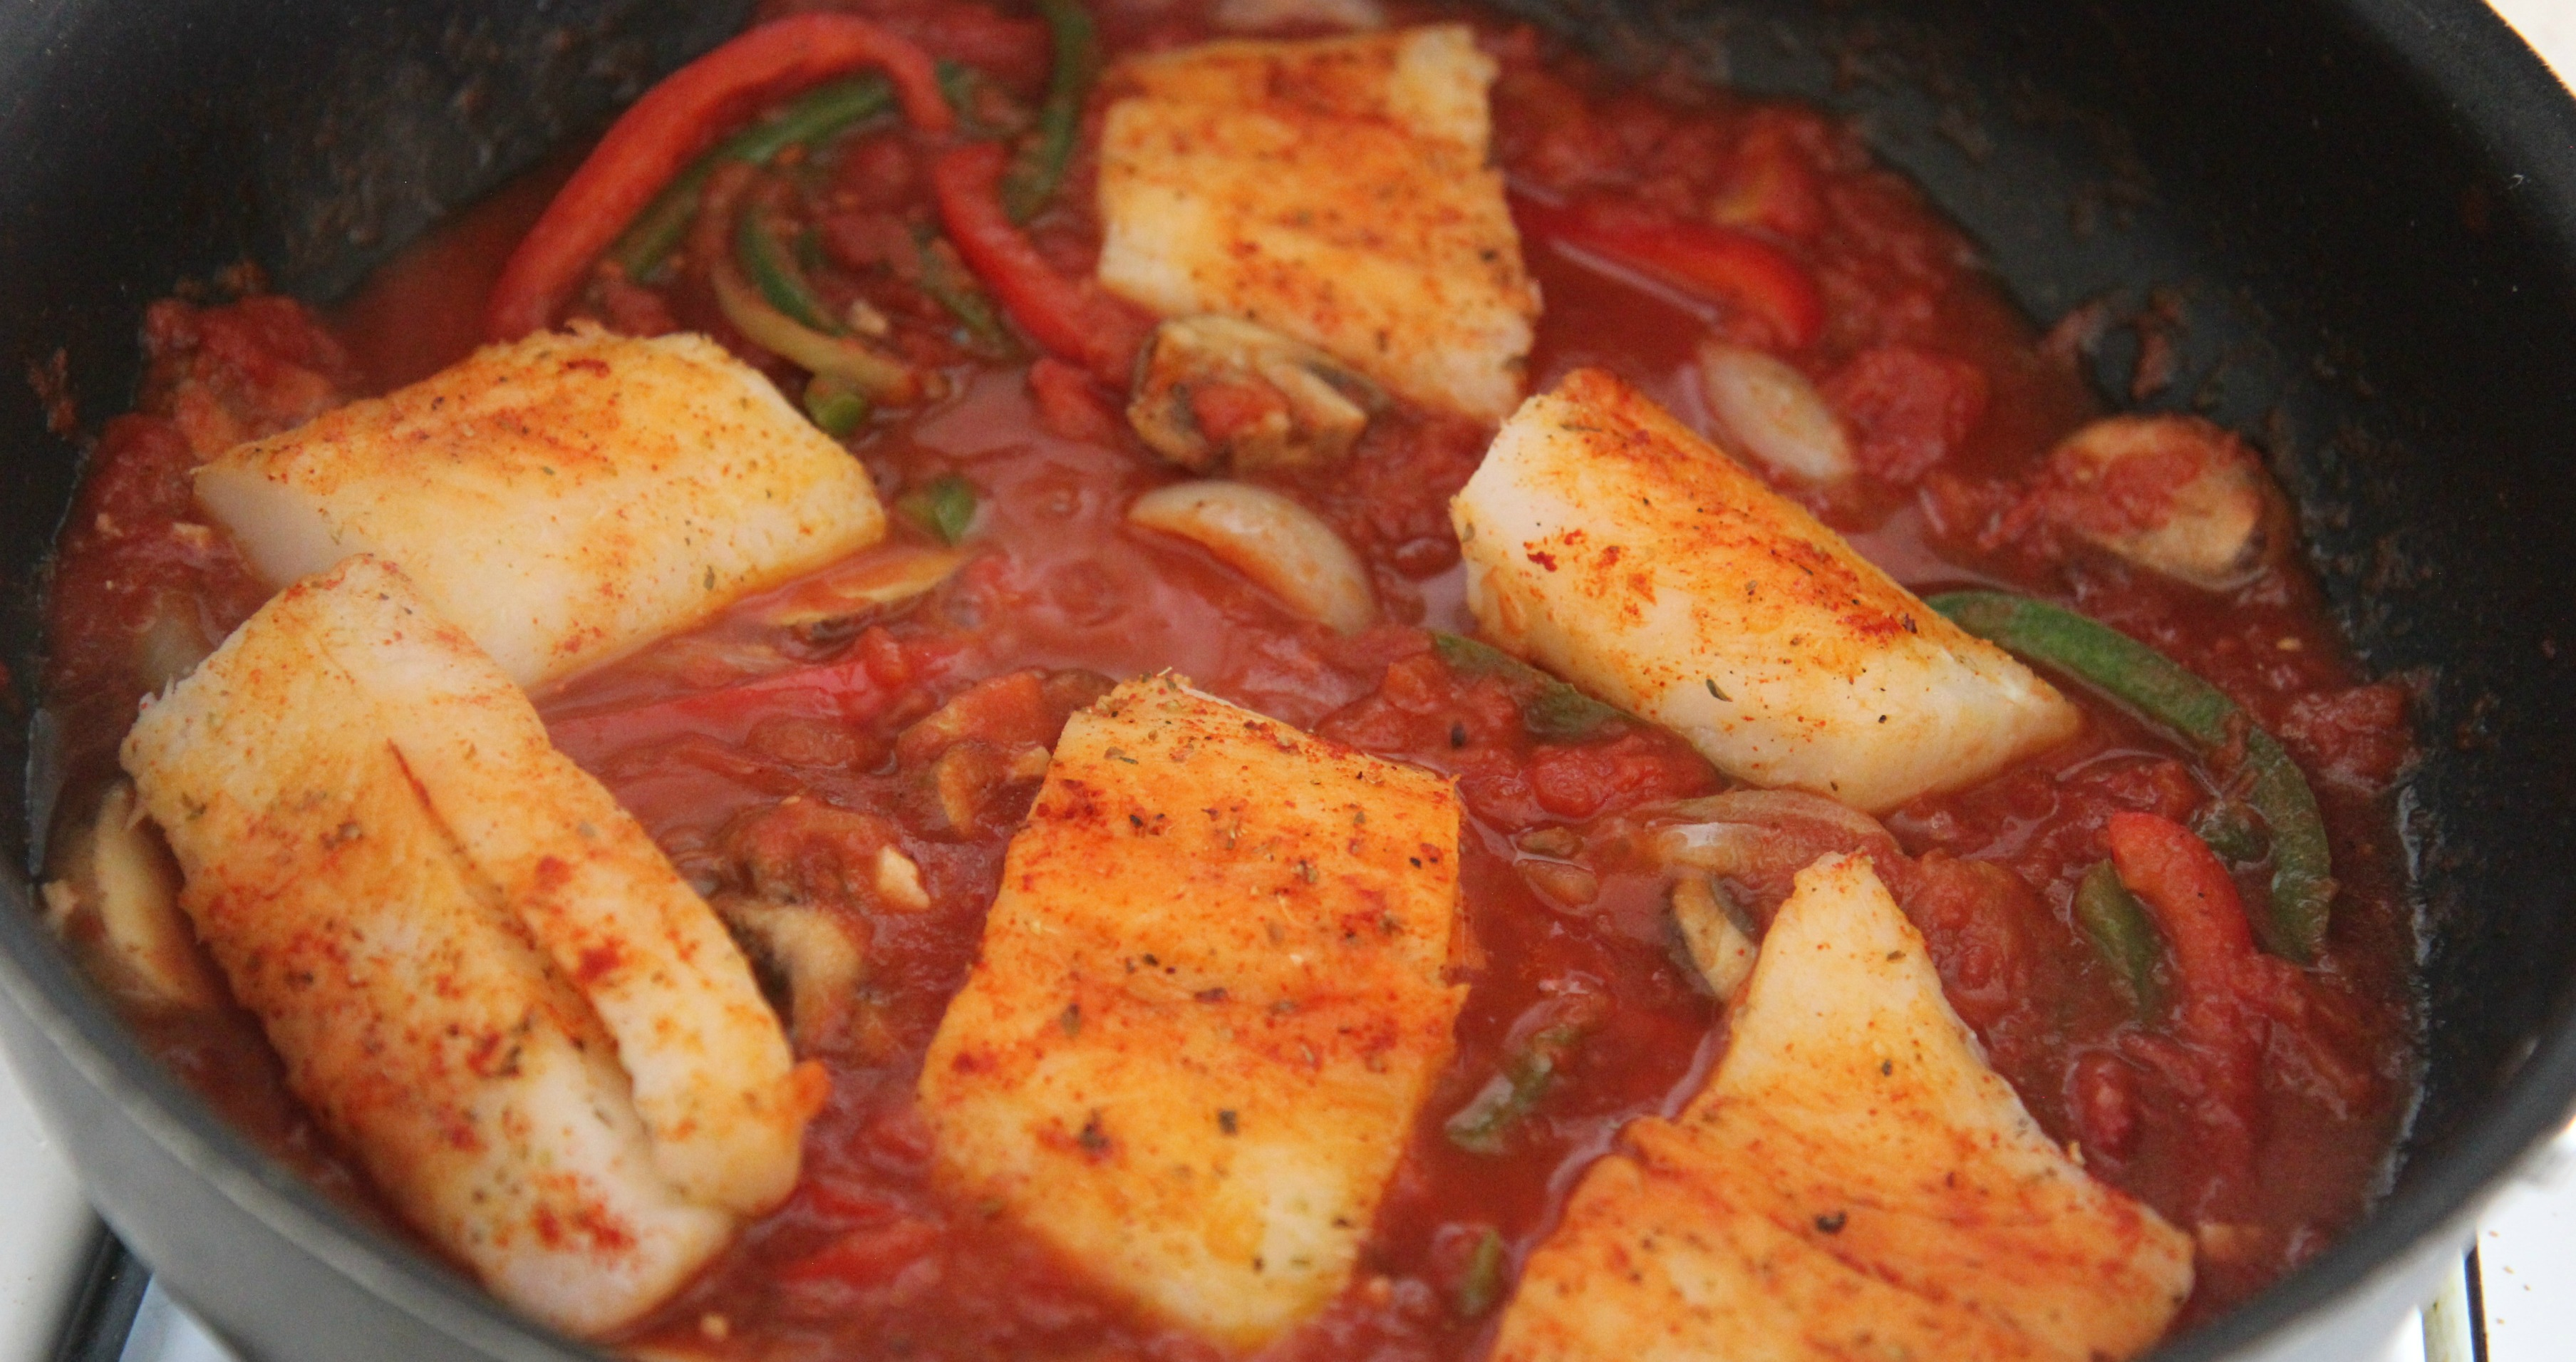 Cook the seasoned cod fish with your tomato sauce and vegetables for 12-15 minutes until fully cooked.